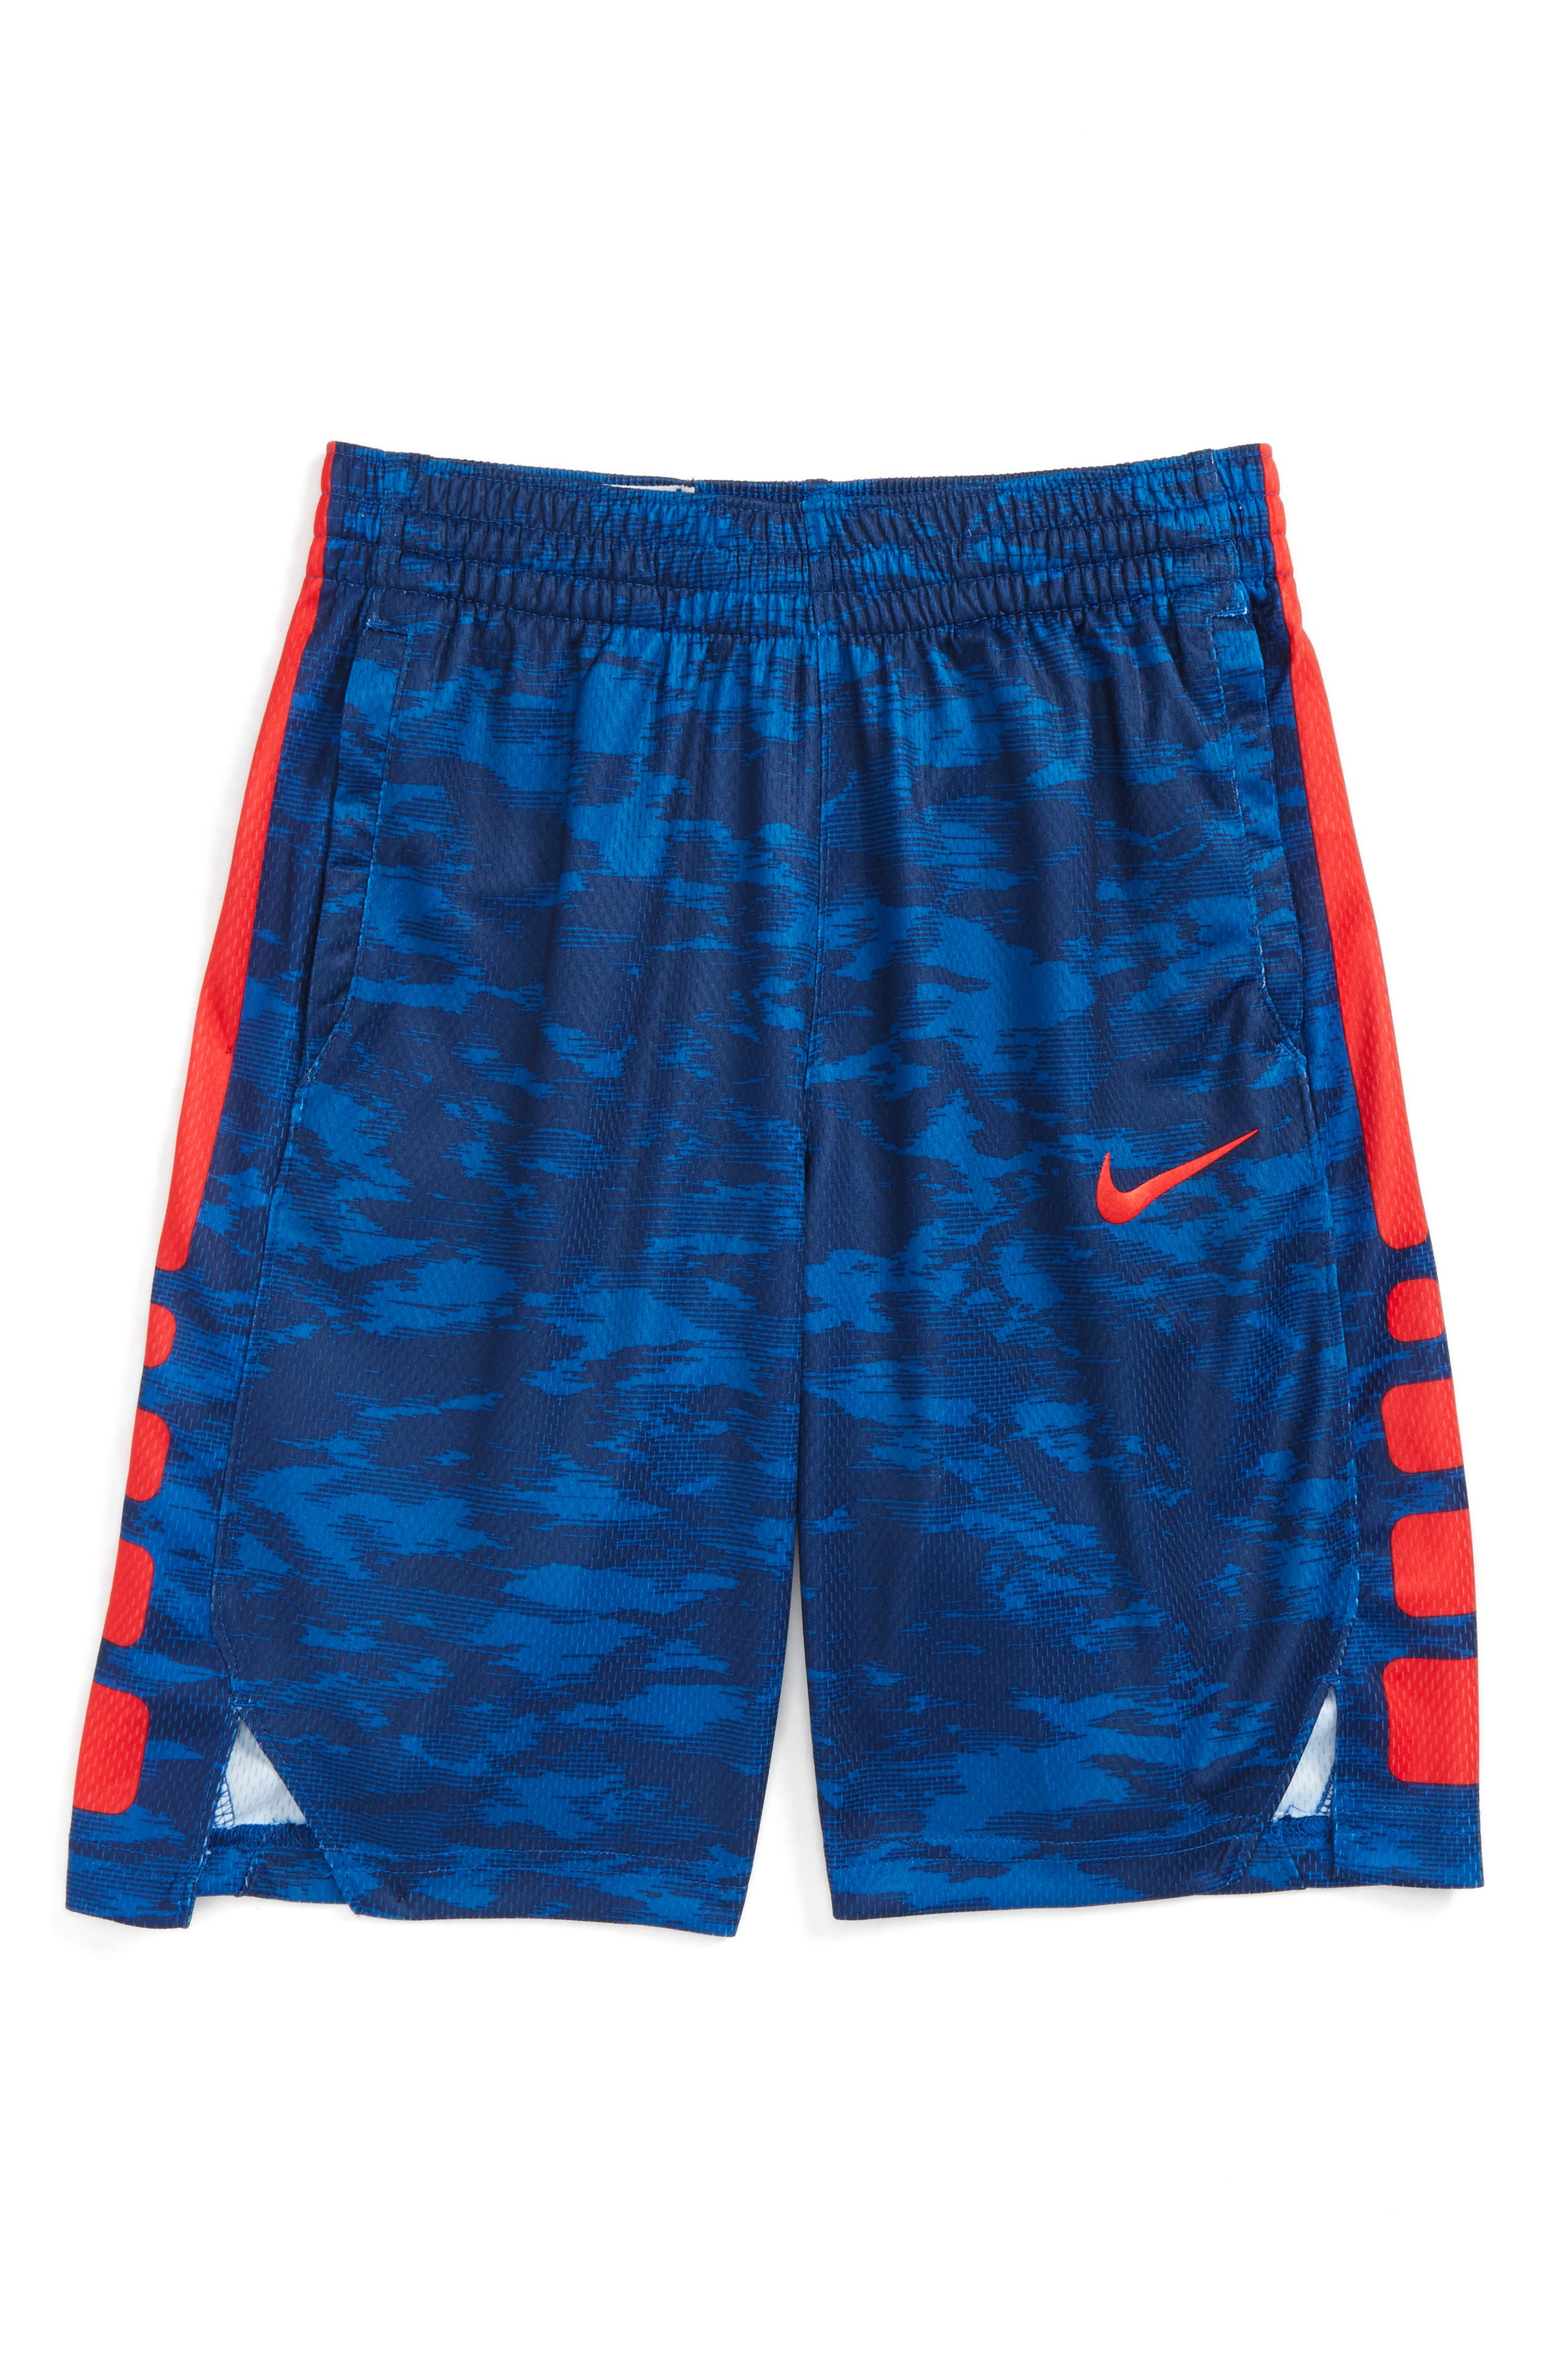 Dry Elite Basketball Shorts,                             Main thumbnail 1, color,                             429